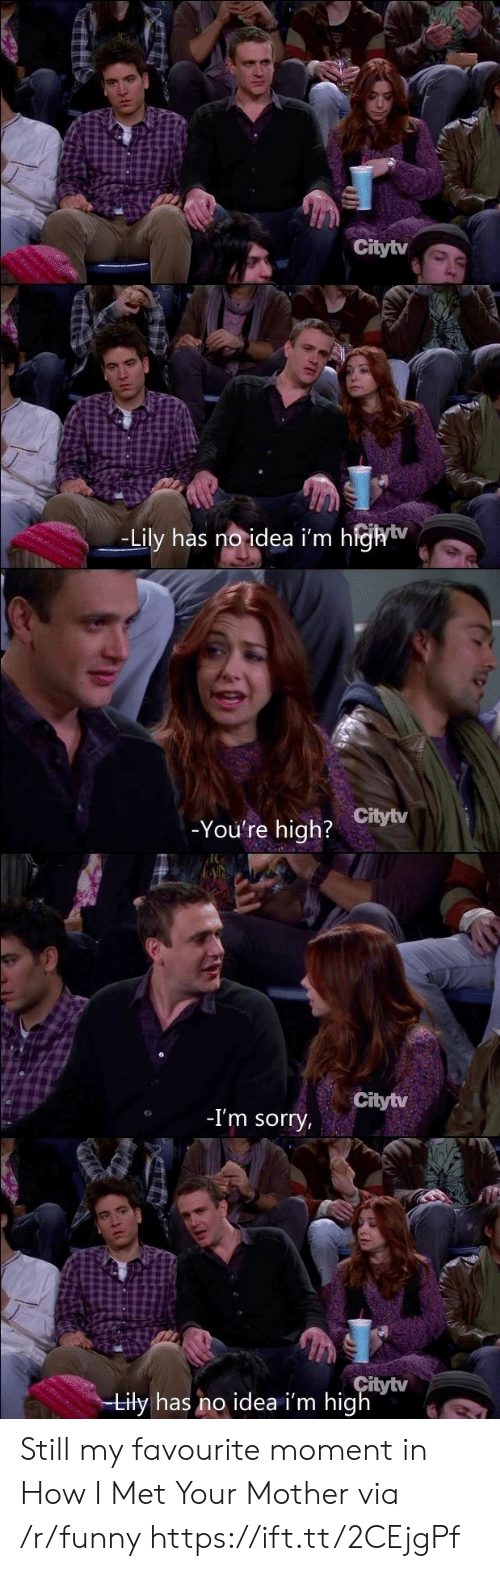 How I Met Your Mother: Citytv  -Lily has noidea i'm h  ejhiv  _  -You're high?  Citytv  Citytv  -I'm sorry  itytv  iły has no idea i'm hig Still my favourite moment in How I Met Your Mother via /r/funny https://ift.tt/2CEjgPf